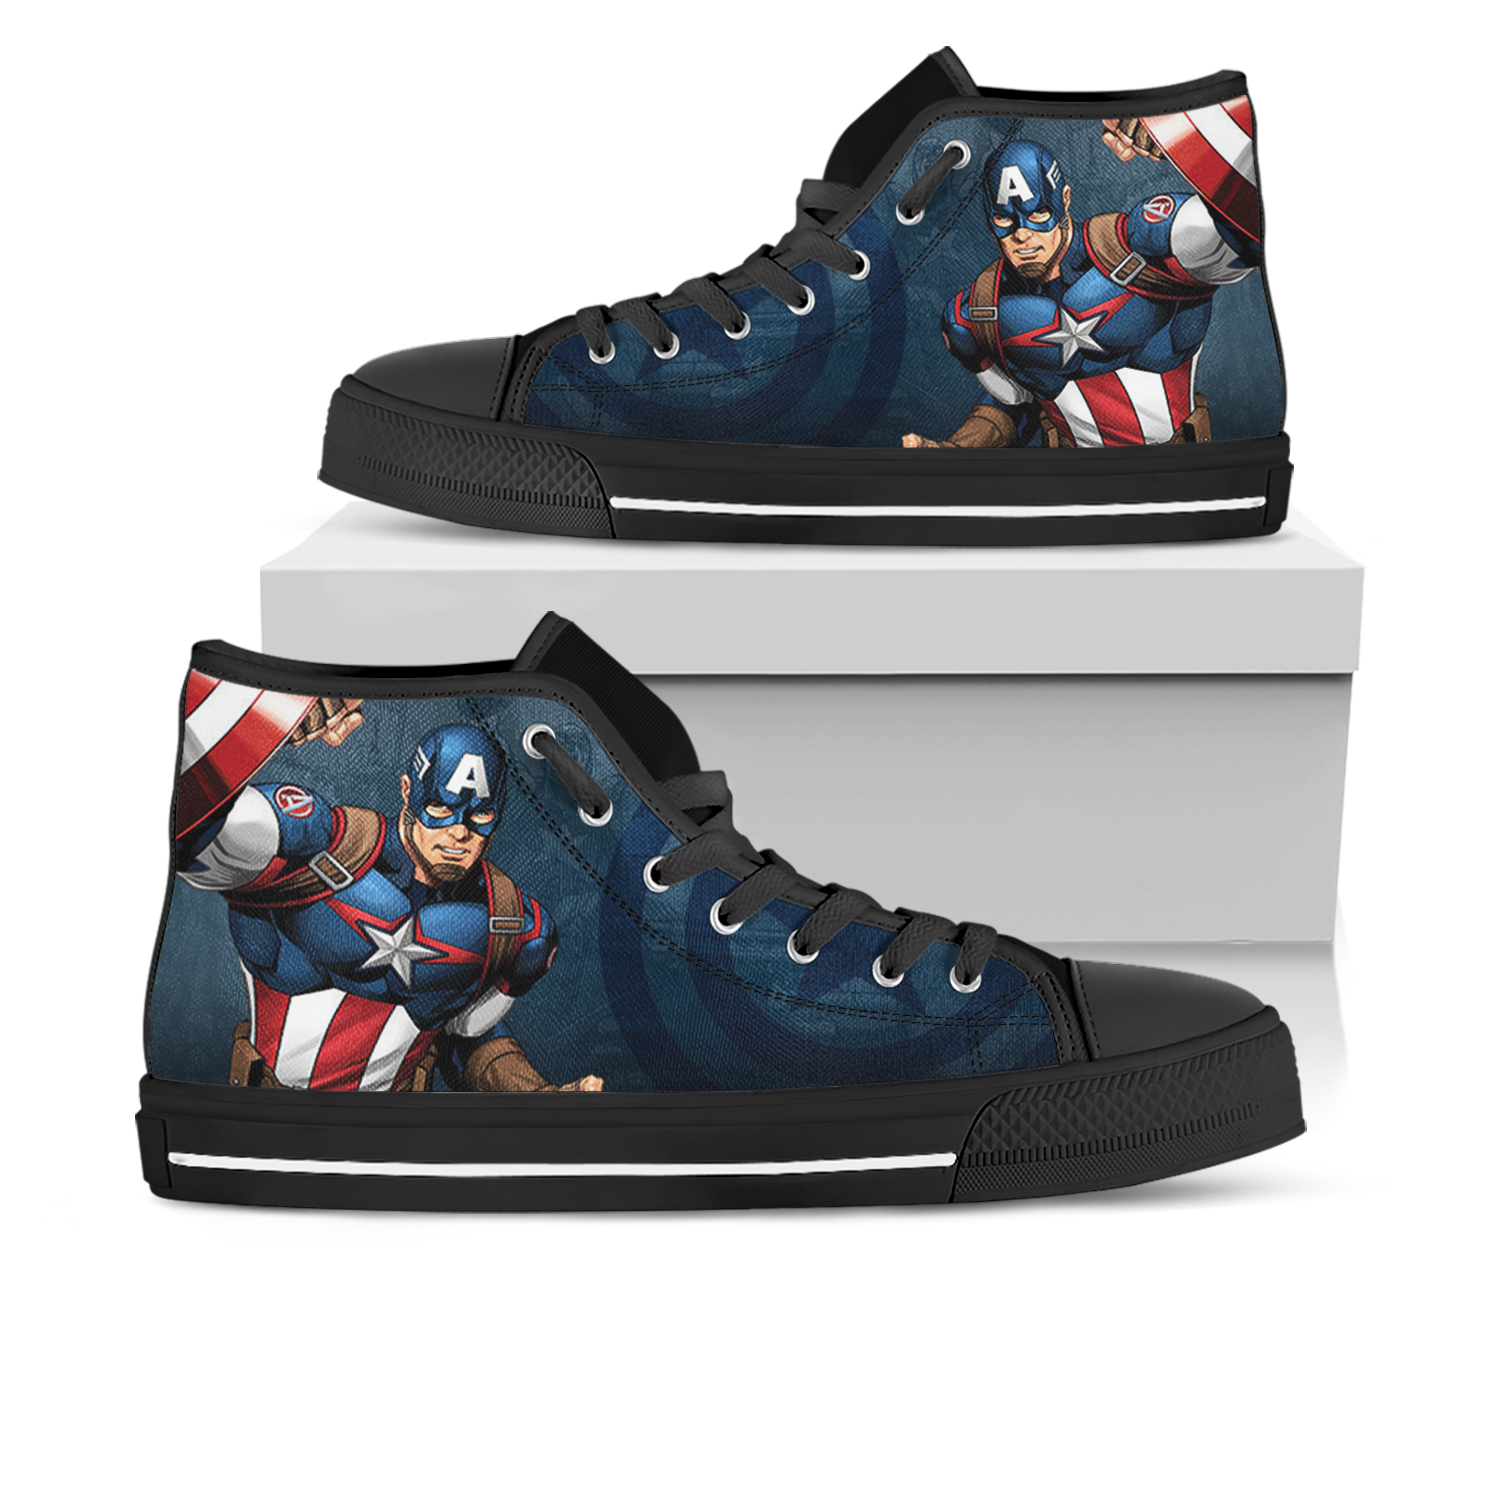 97e6c7e04d0e Captain america sneaker running shoes sneakers look like converse ...